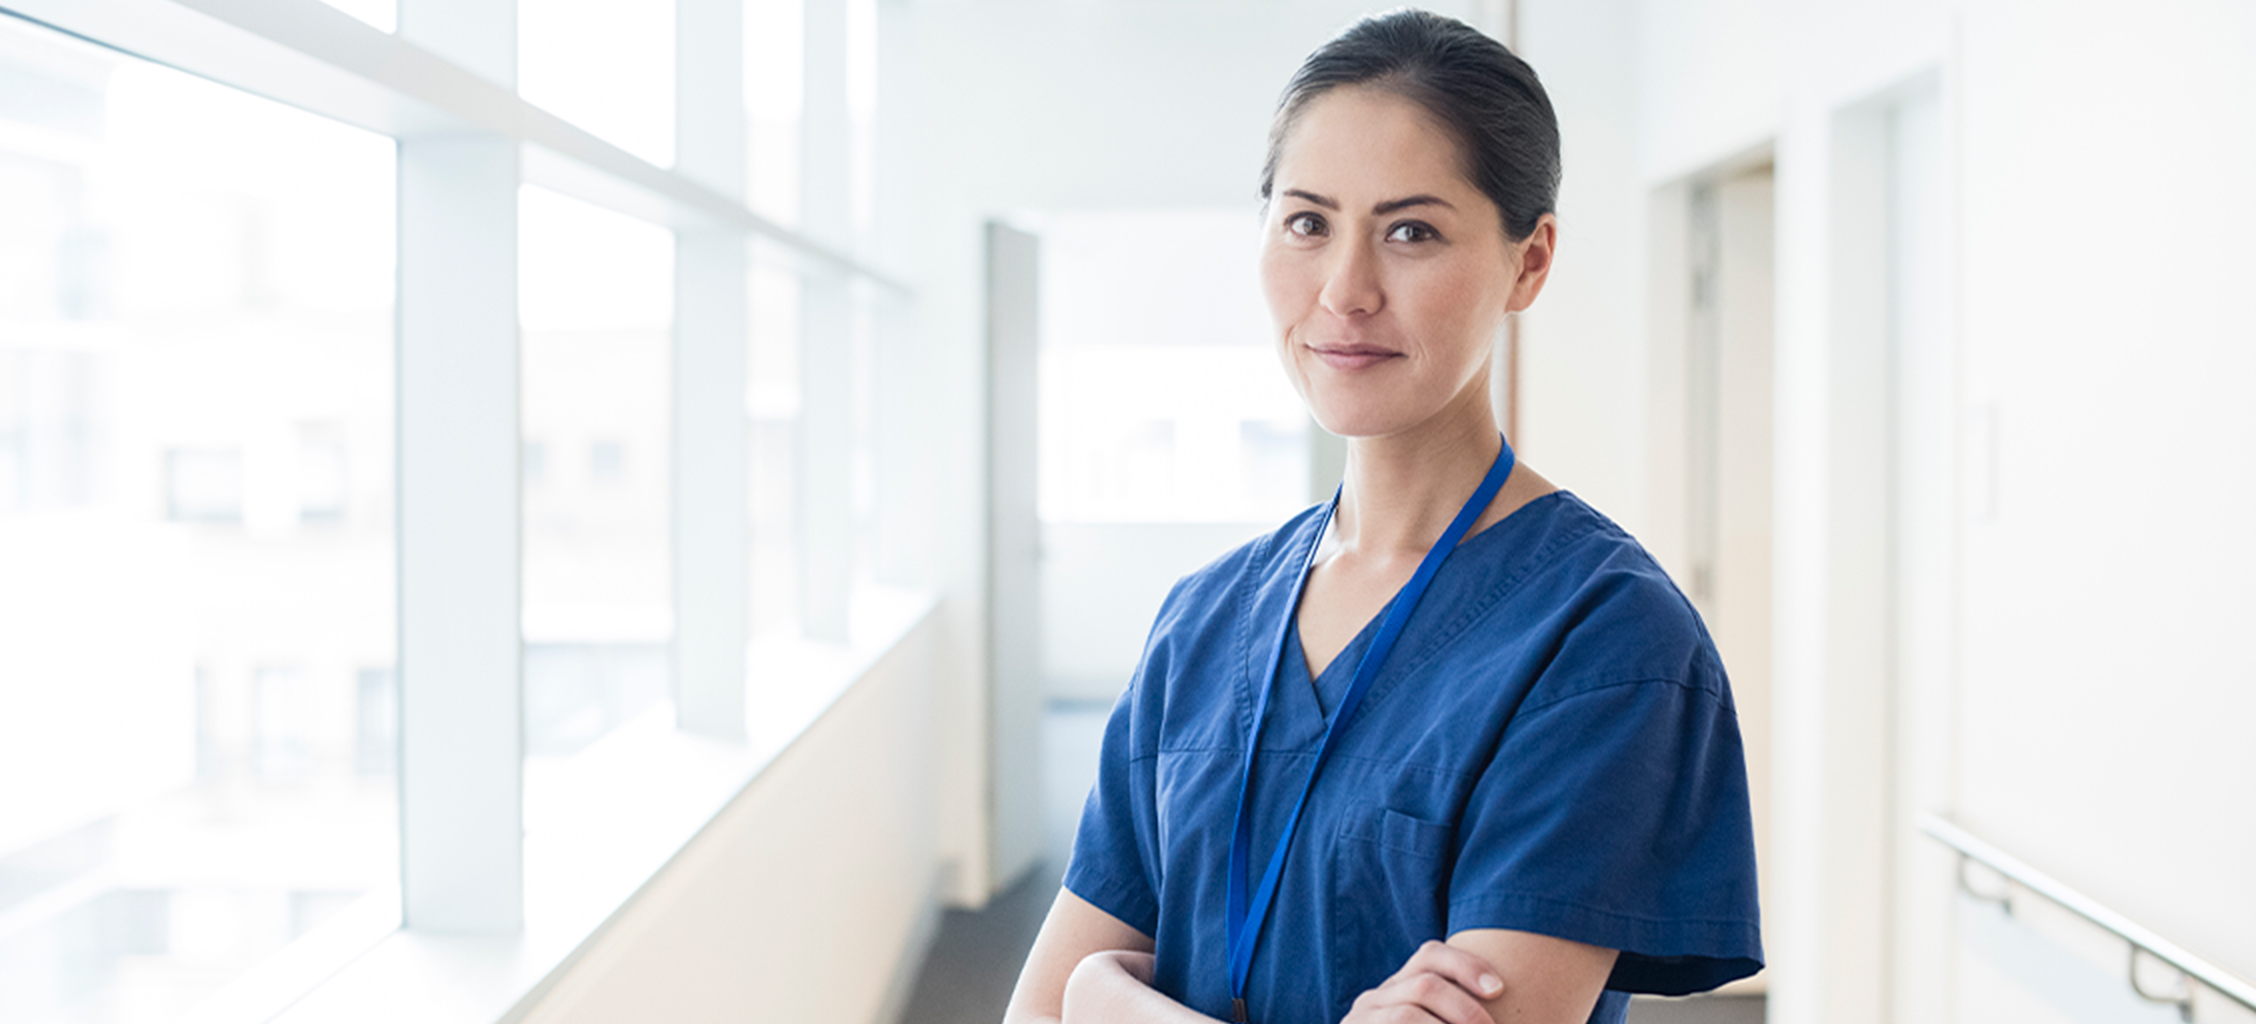 Tackling healthcare worker burnout: Using feedback to improve employee wellbeing